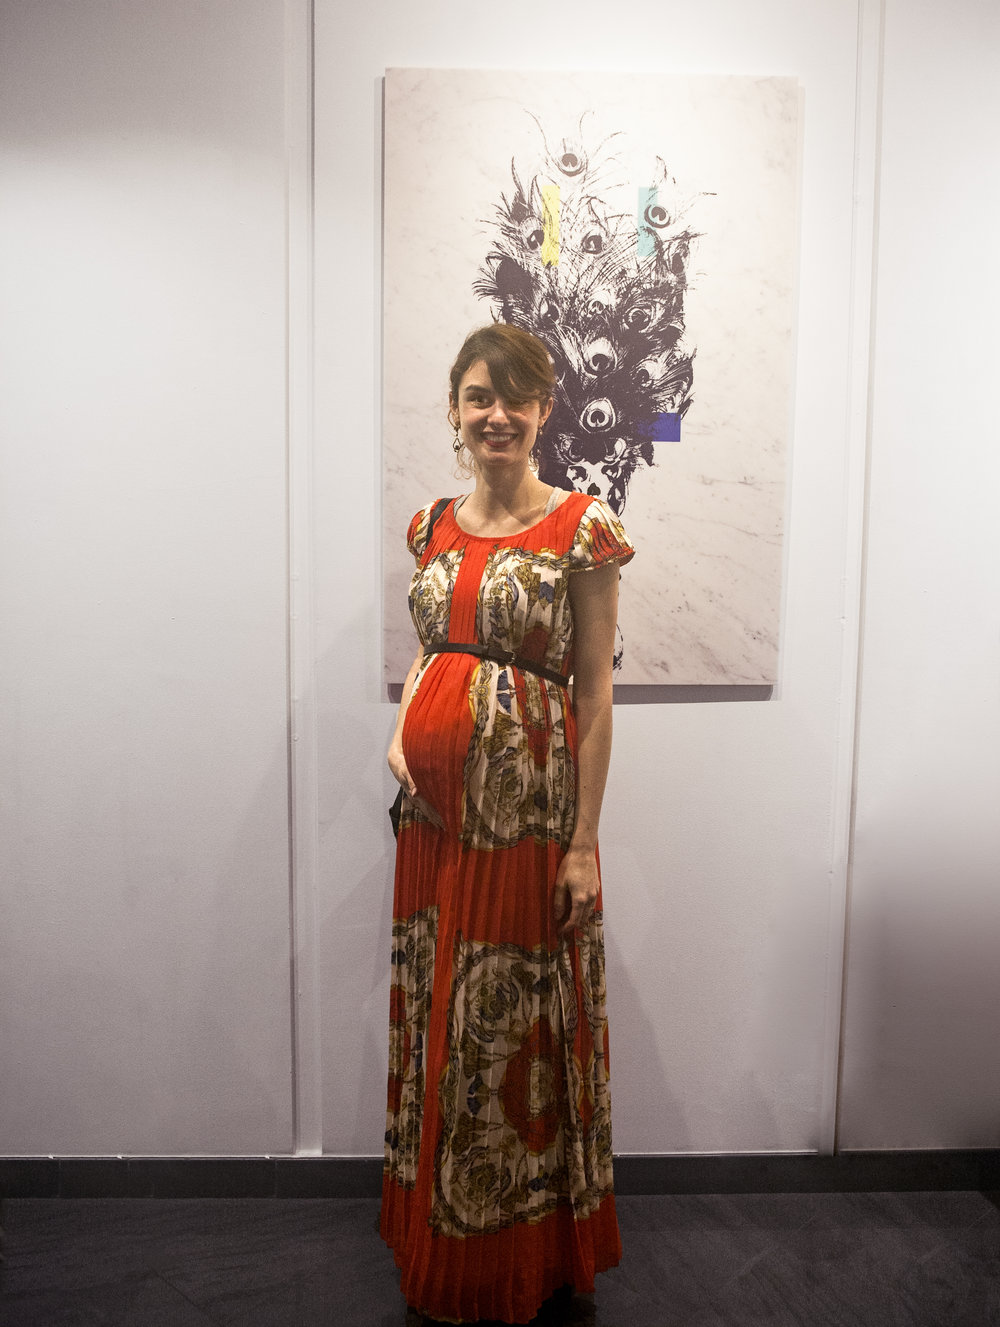 The artist Julia A. Etedi at the opening of her exhibition on the 8th of March at the Gallery Taglialatella.